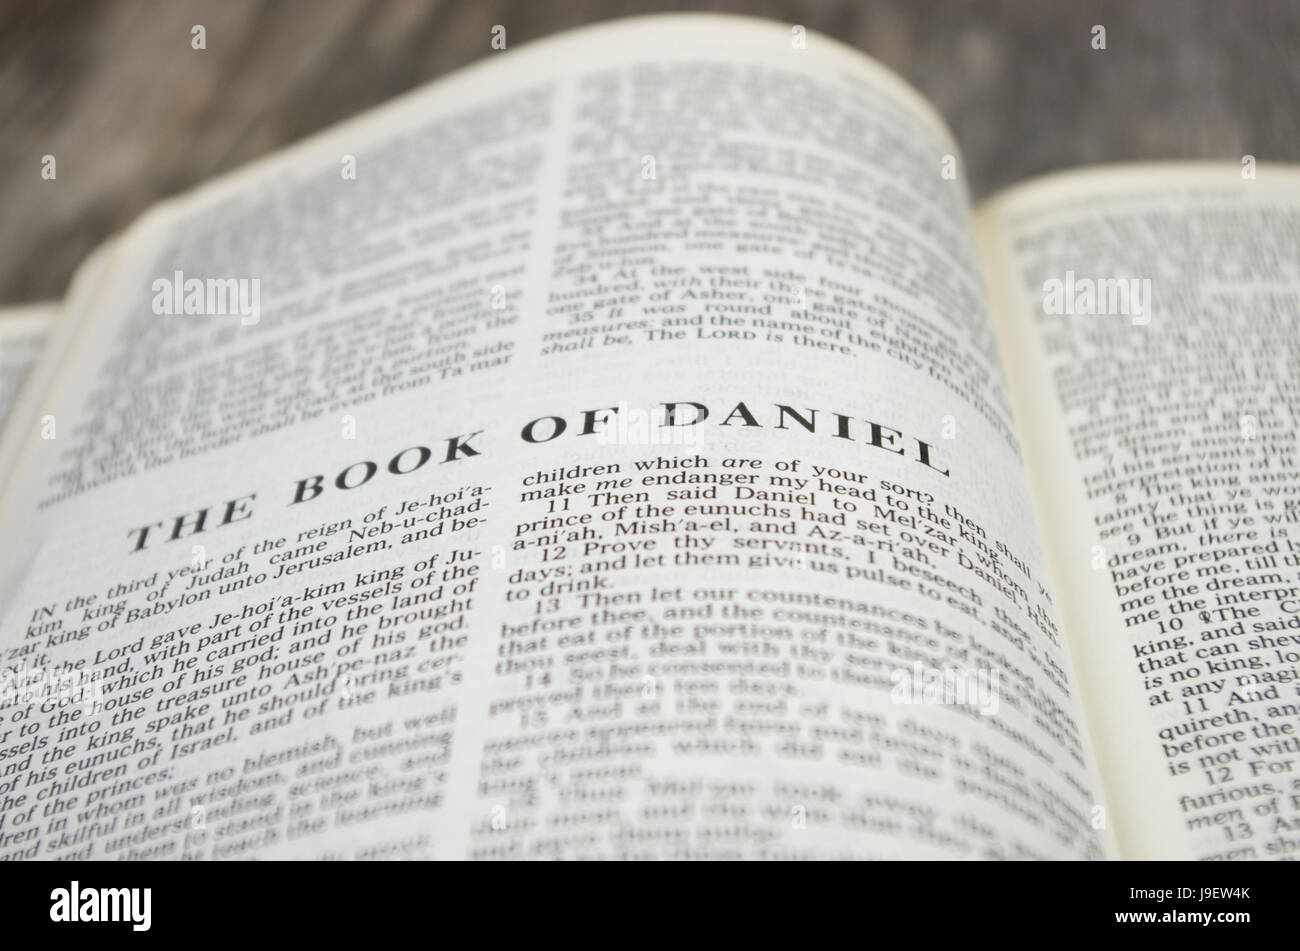 Title page for the book of Daniel in the Bible – King James Version - Stock Image